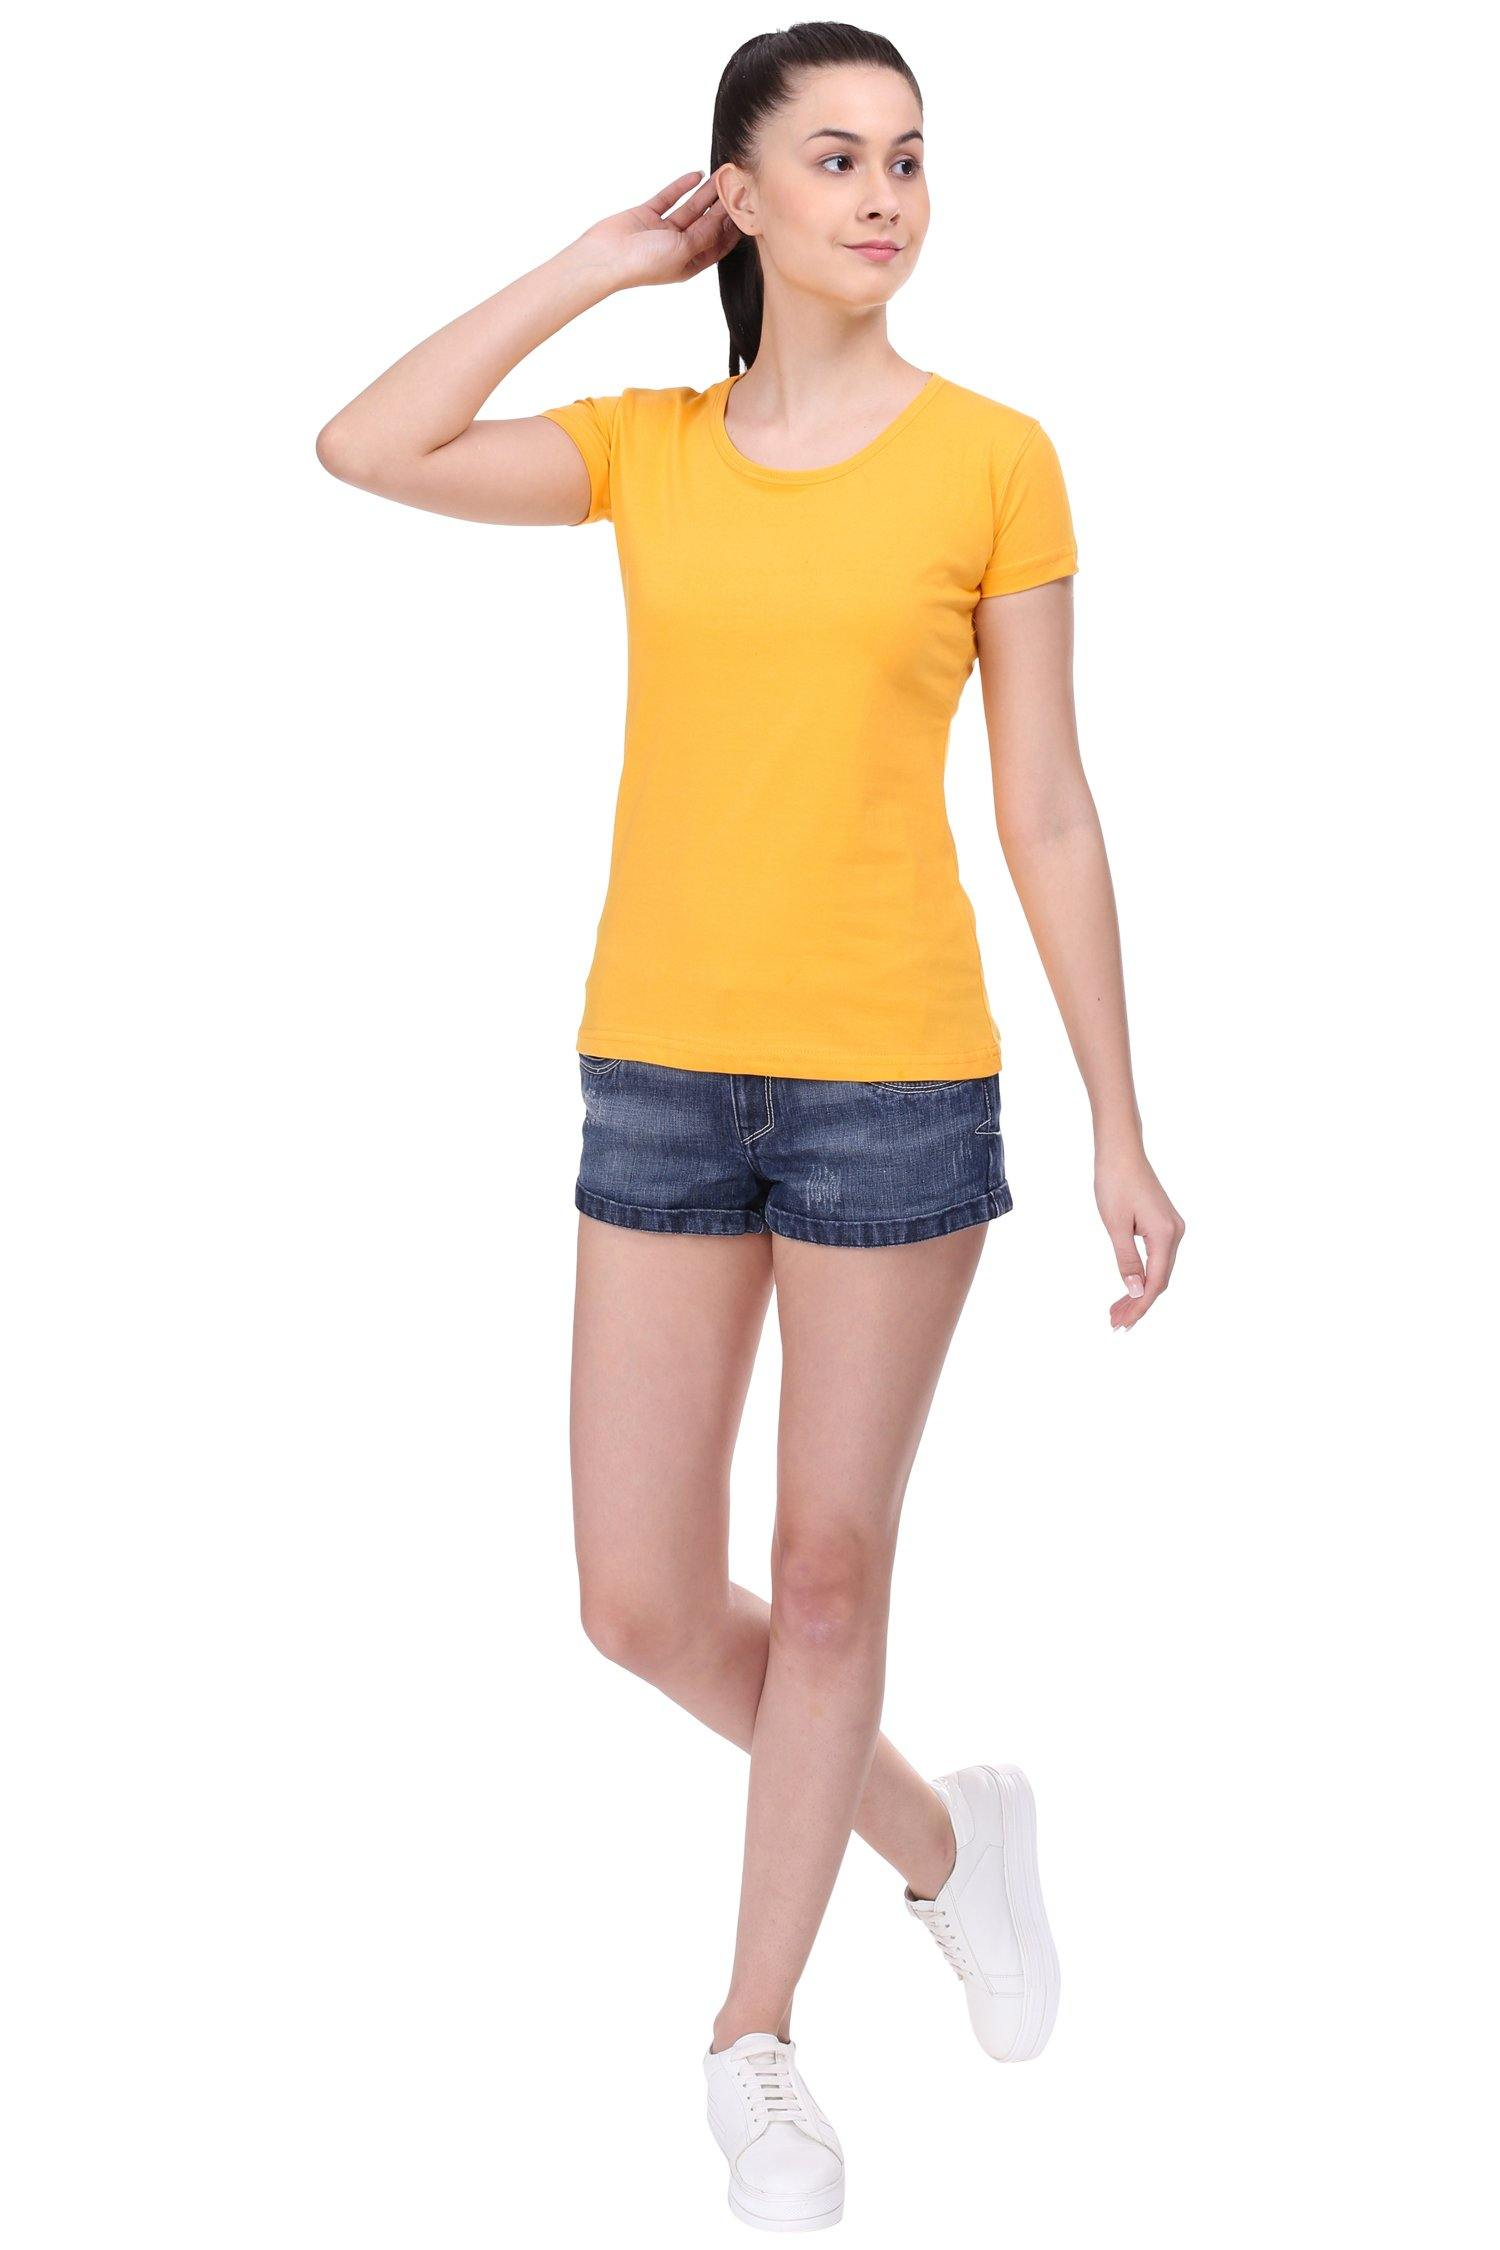 Premium Quality Plain Mango Yellow Color Half Sleeve T-Shirt For Woman - thewardrobe-store-in